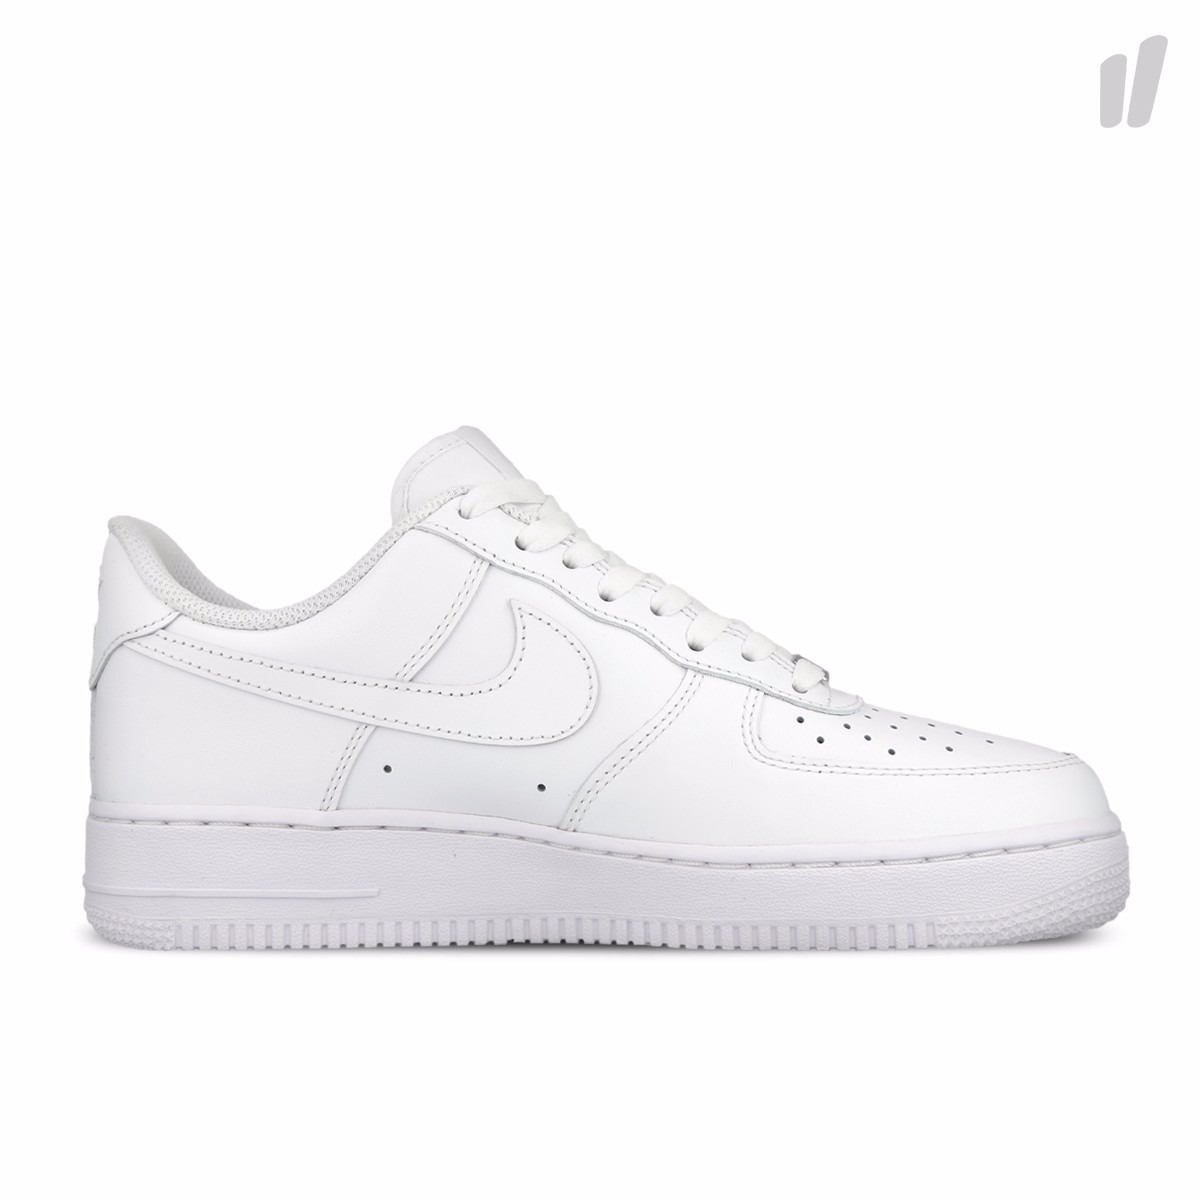 online retailer 32c8a c2b11 imagenes de zapatos nike air force one Kobe ...